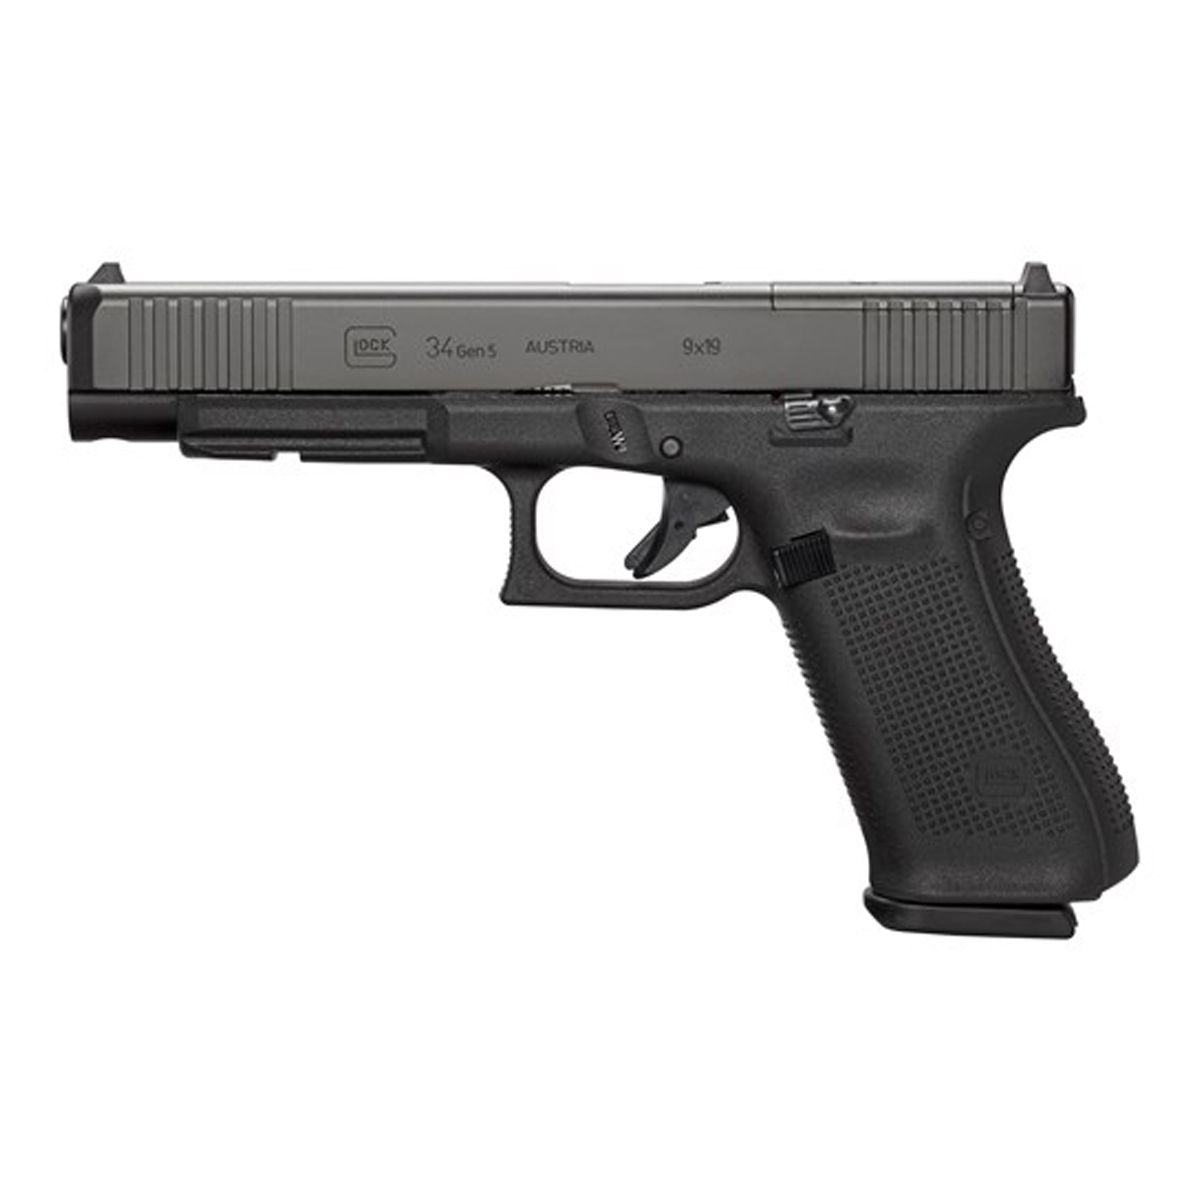 Glock 34 MOS Gen 5 9mm Pistol with Front Serrations, Black - PA343S103M